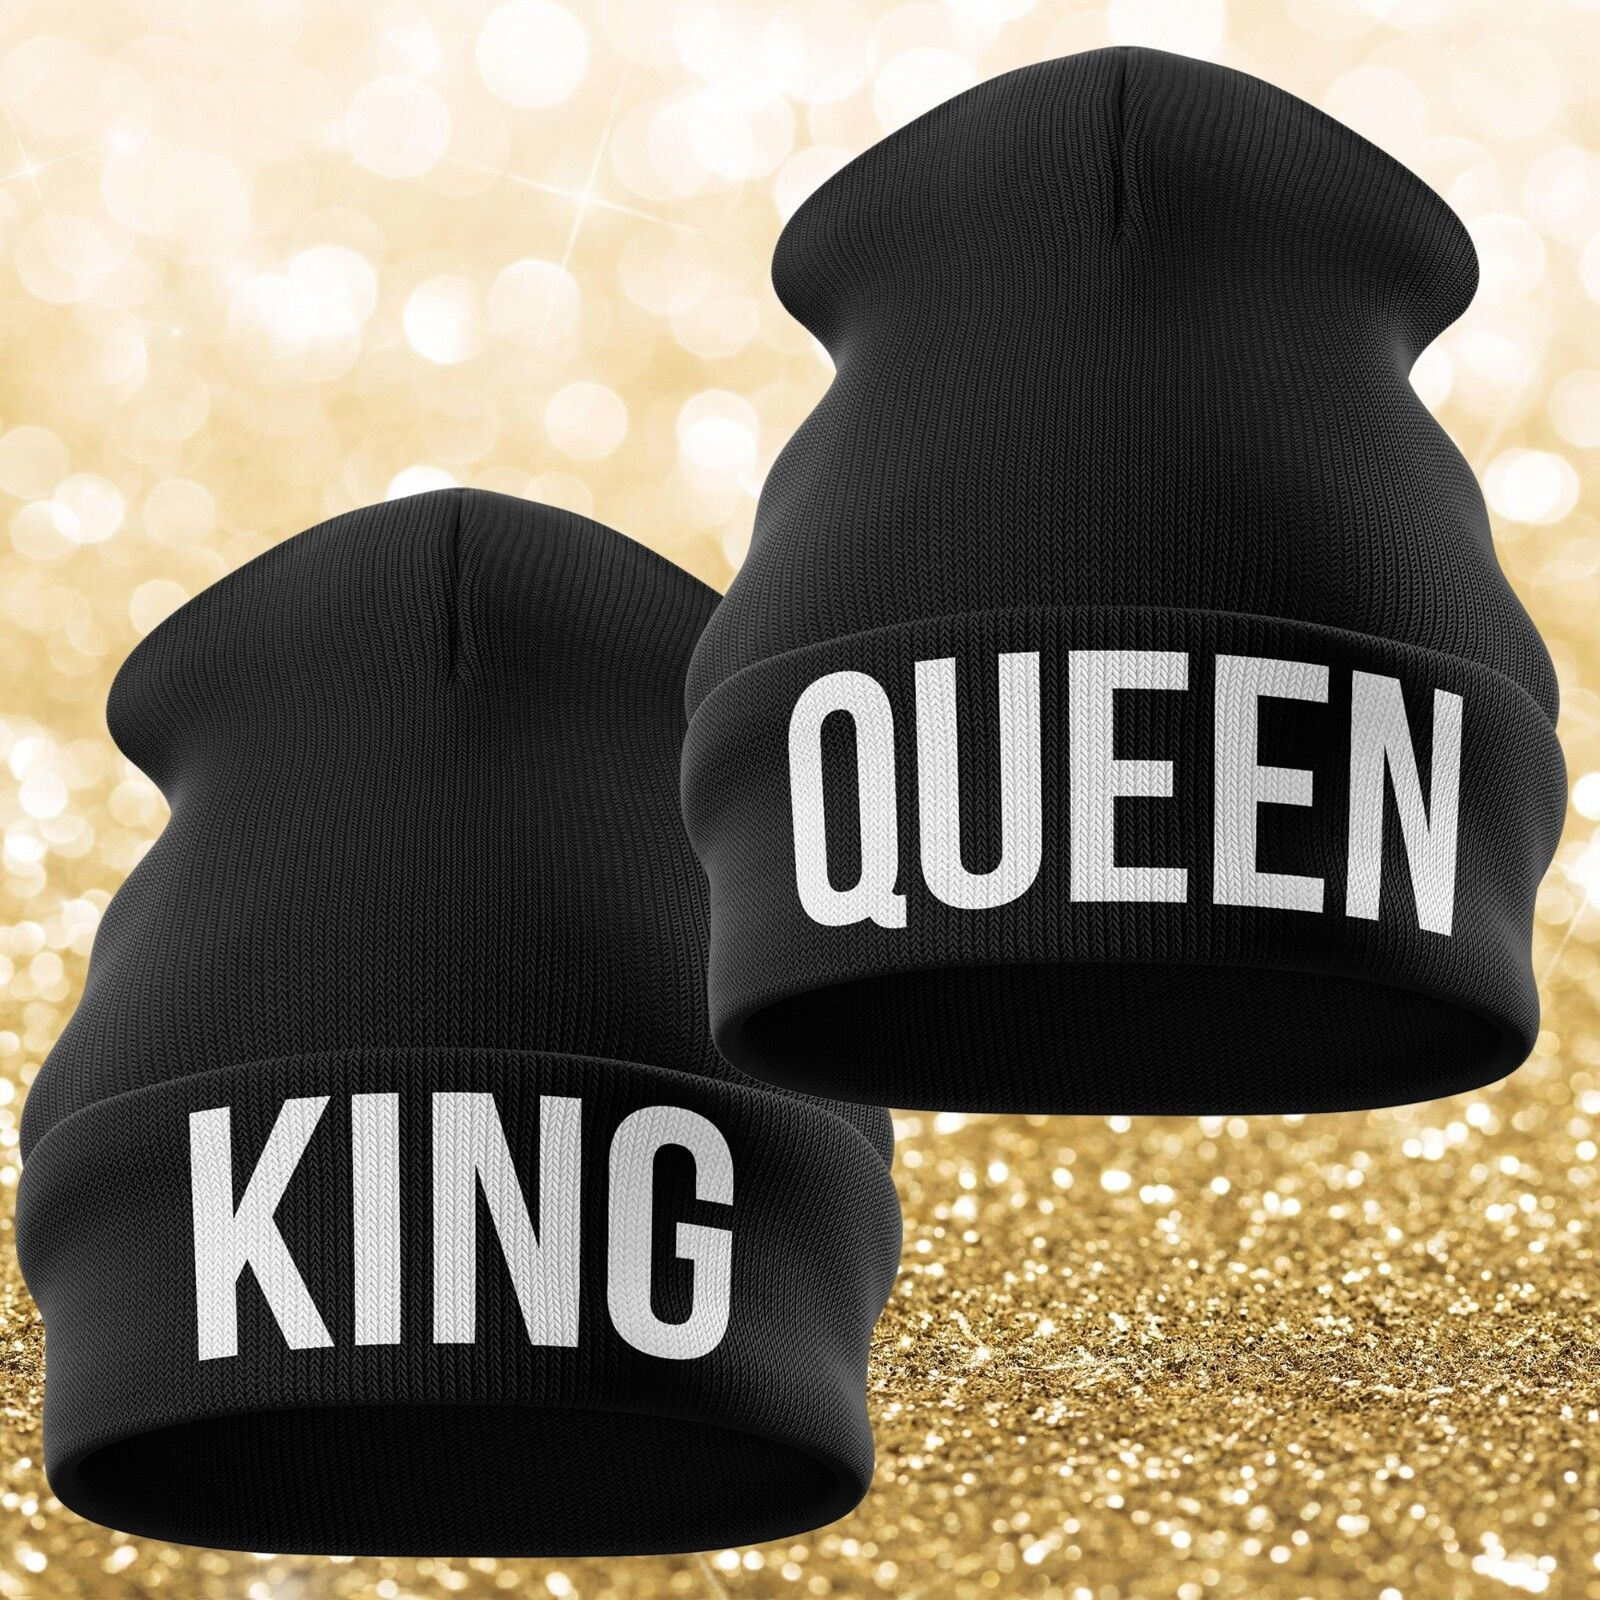 a51716fa6 Details about Family Beanie Hat King Queen Prince Princess Hat Gift Funny  Winter Hats Swag B3